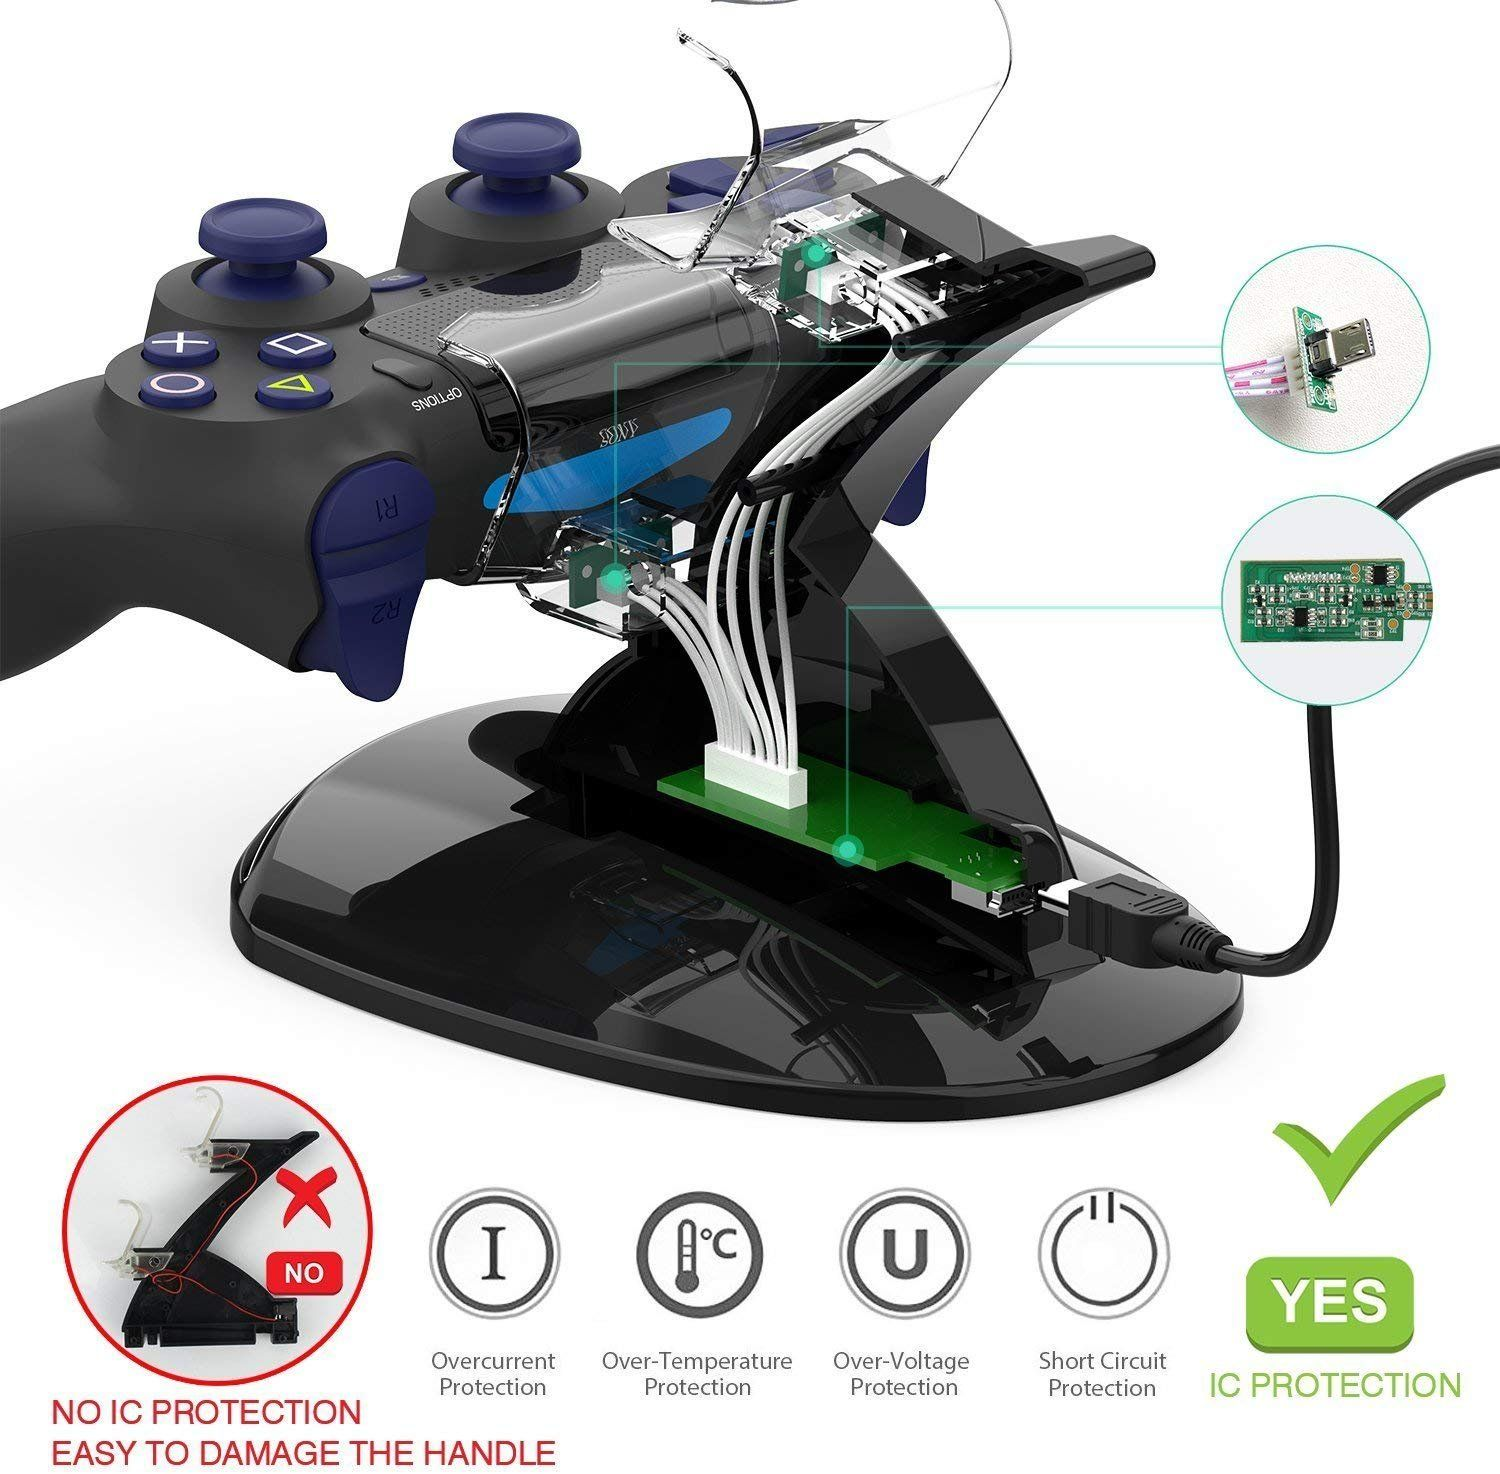 Ps4 Controller Charger Y Team Playstation 4 Ps4 Ps4 Pro Ps4 Slim Controller Charger Chargi Ps4 Controller Charger Ps4 Controller Ps4 Wireless Controller